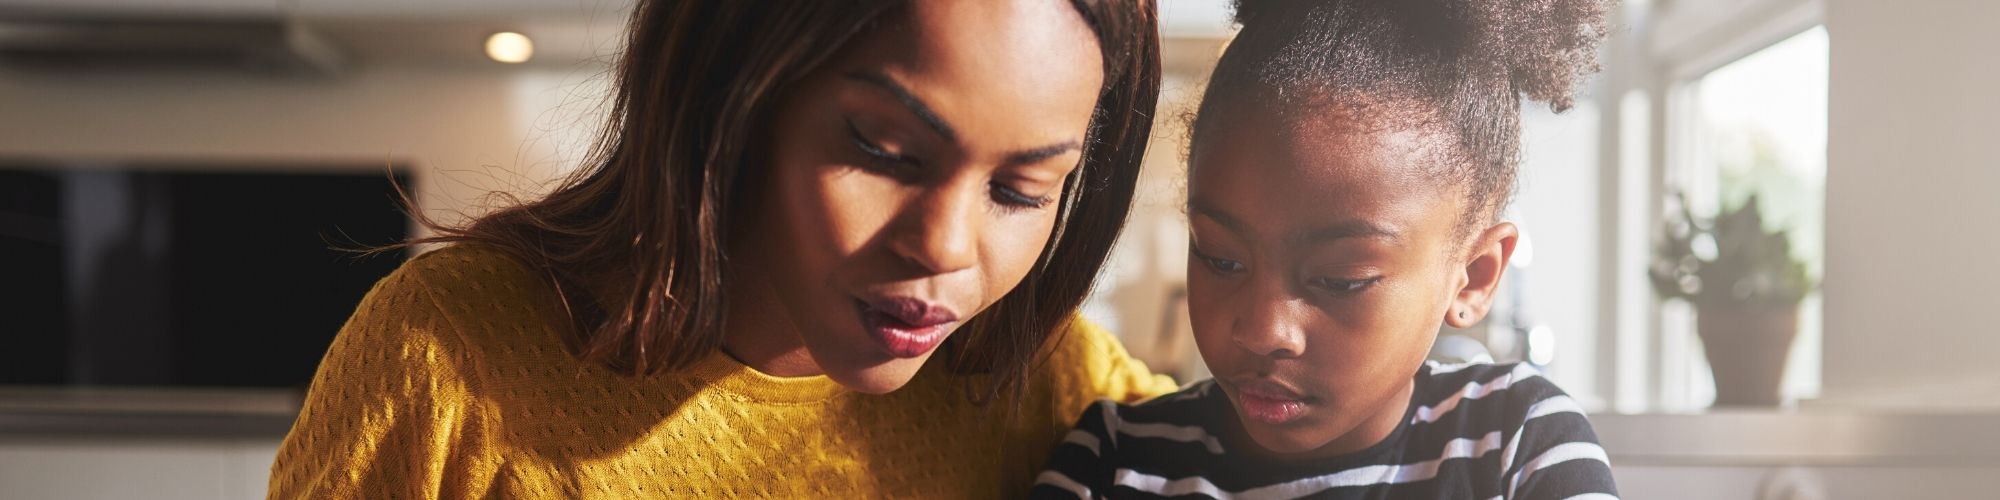 A PARENT'S ULTIMATE GUIDE TO VIRTUAL LEARNING: HOW TO MANAGE YOUR CHILD'S LEARNING NEEDS WHILE MAINTAINING A BALANCED LIFESTYLE